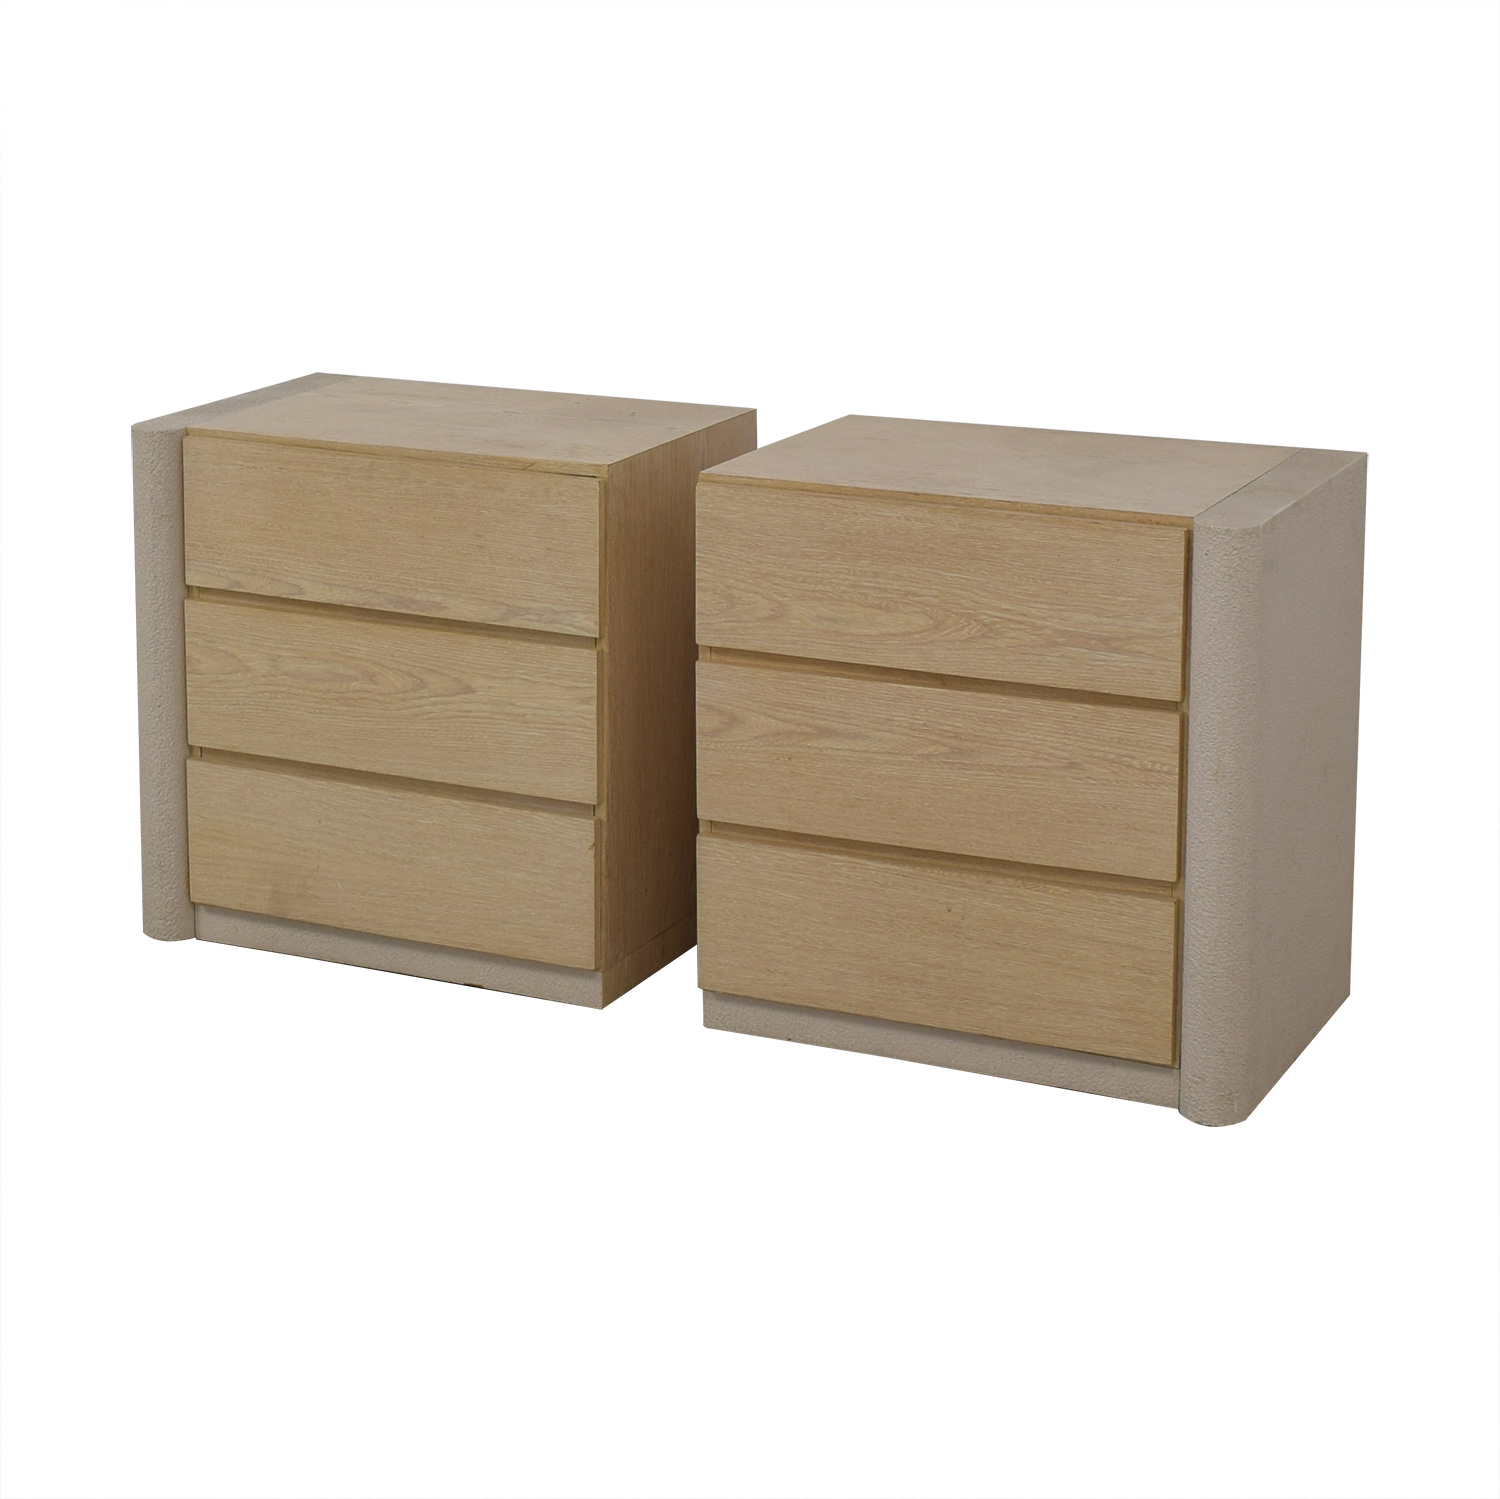 Nightstand with Drawers sale